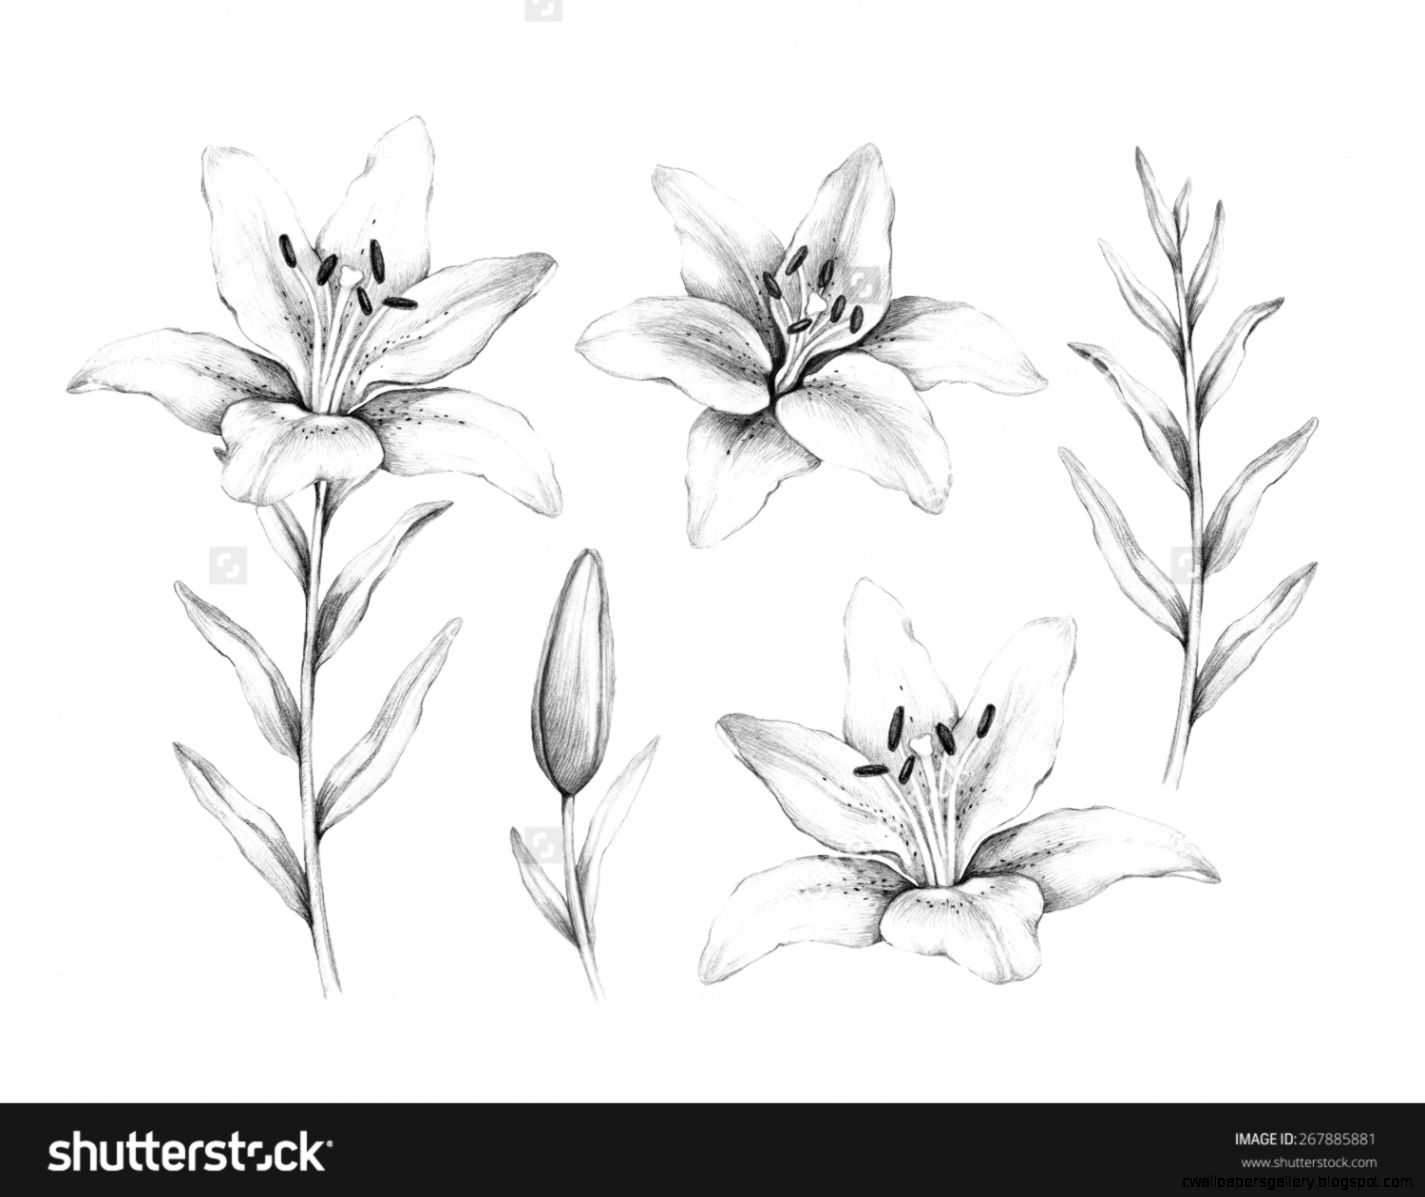 Pencil Drawing Of Lily Flower Stock Photo 267885881  Shutterstock